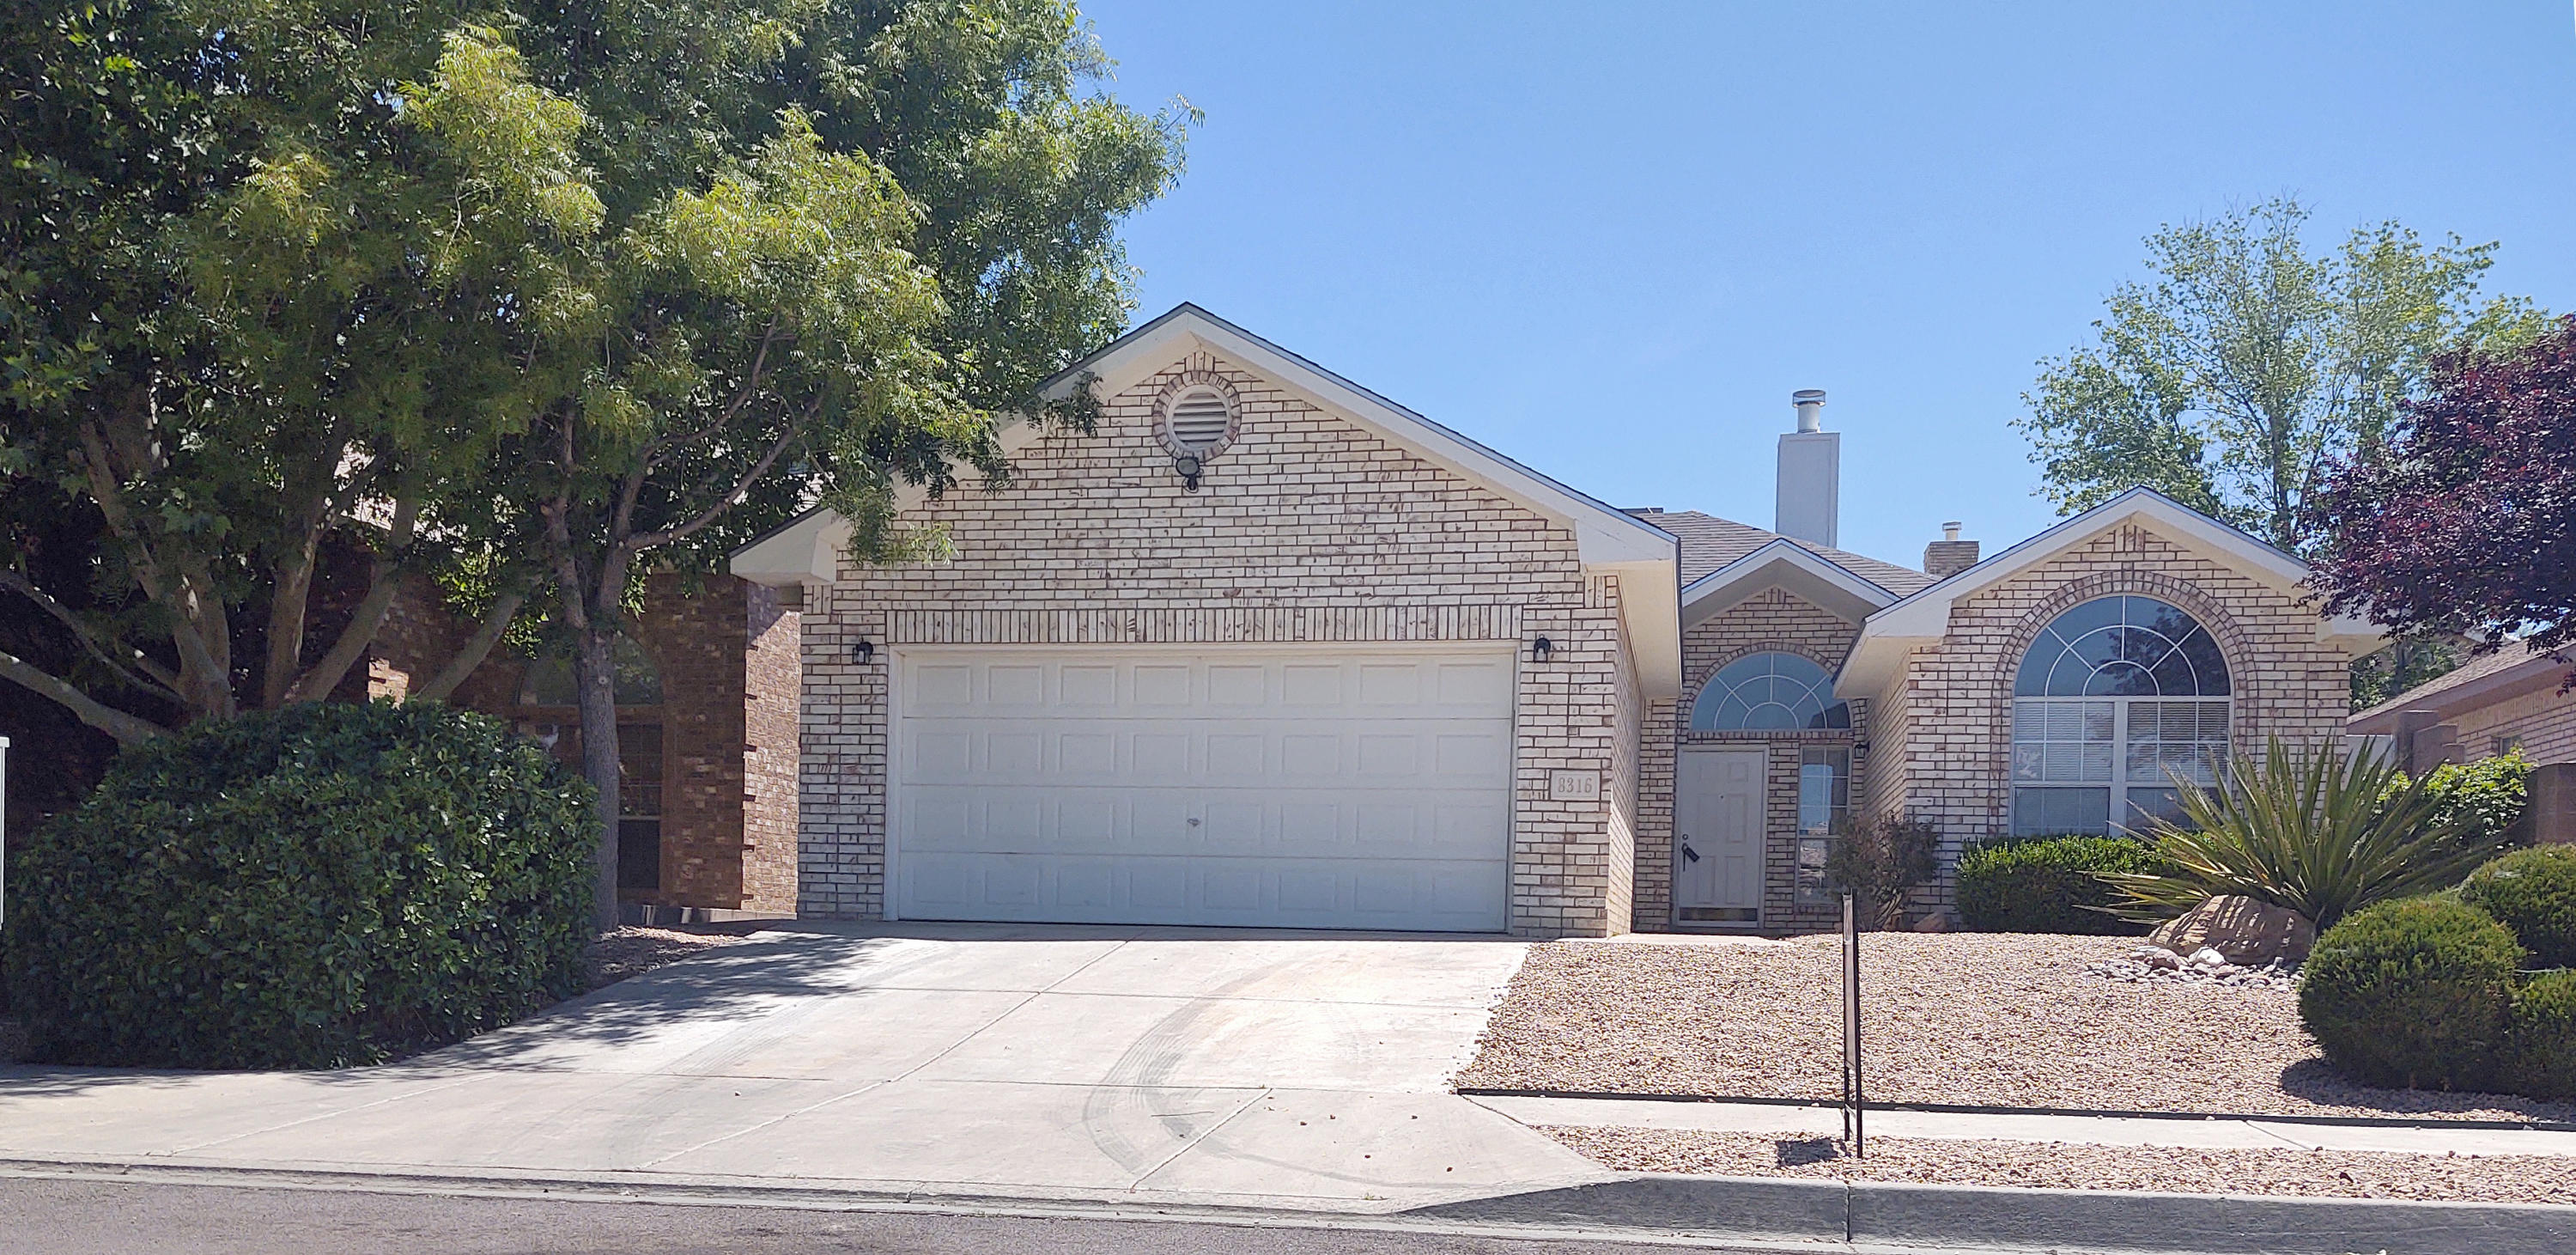 4 BEDROOM IN DESIRABLE NEIGHBORHOOD! Priced to sell!  NEW: Roof, paint, carpet, tile in showers, lights and fans, plumbing fixtures and water heater!  Extra storage!  You'll love  the location!